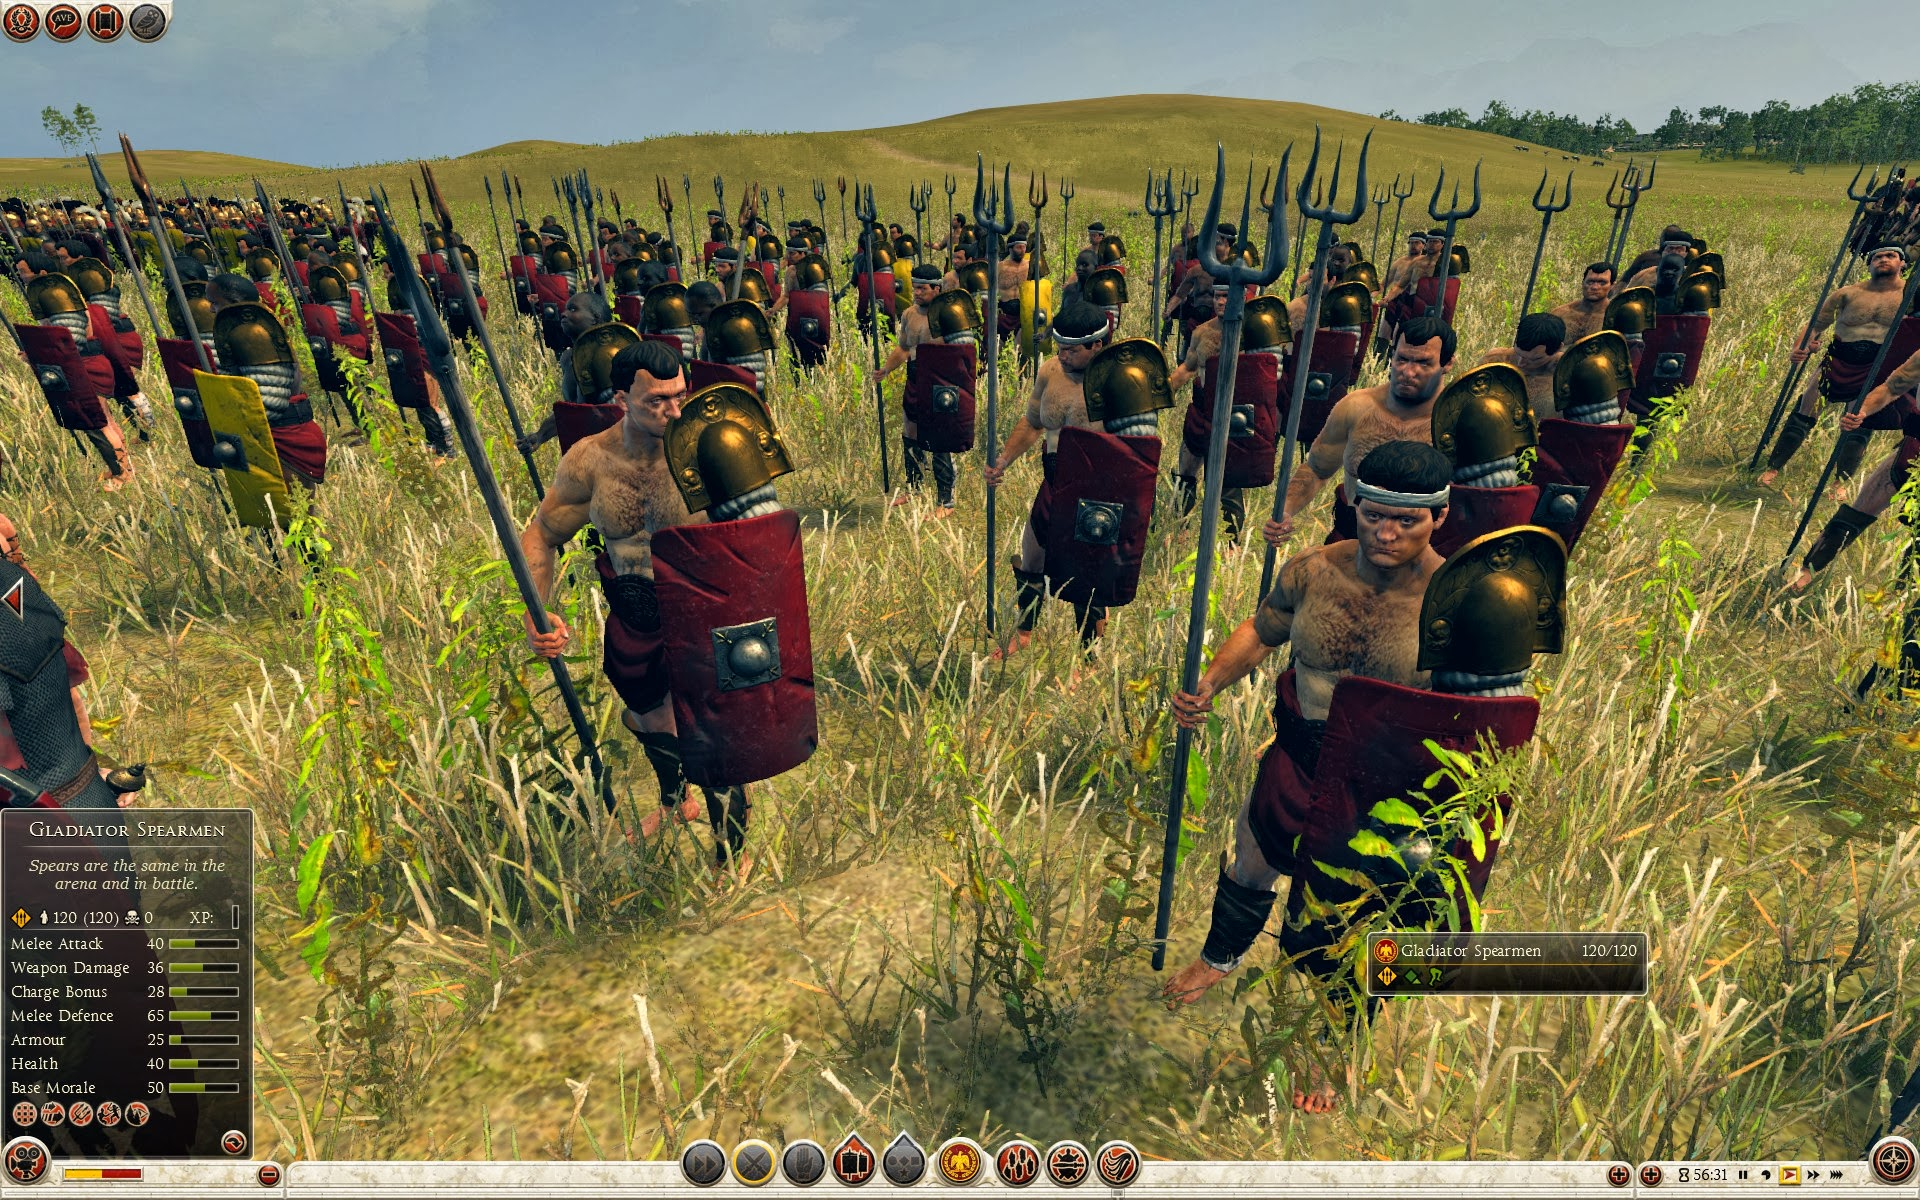 Gladiator Spearmen